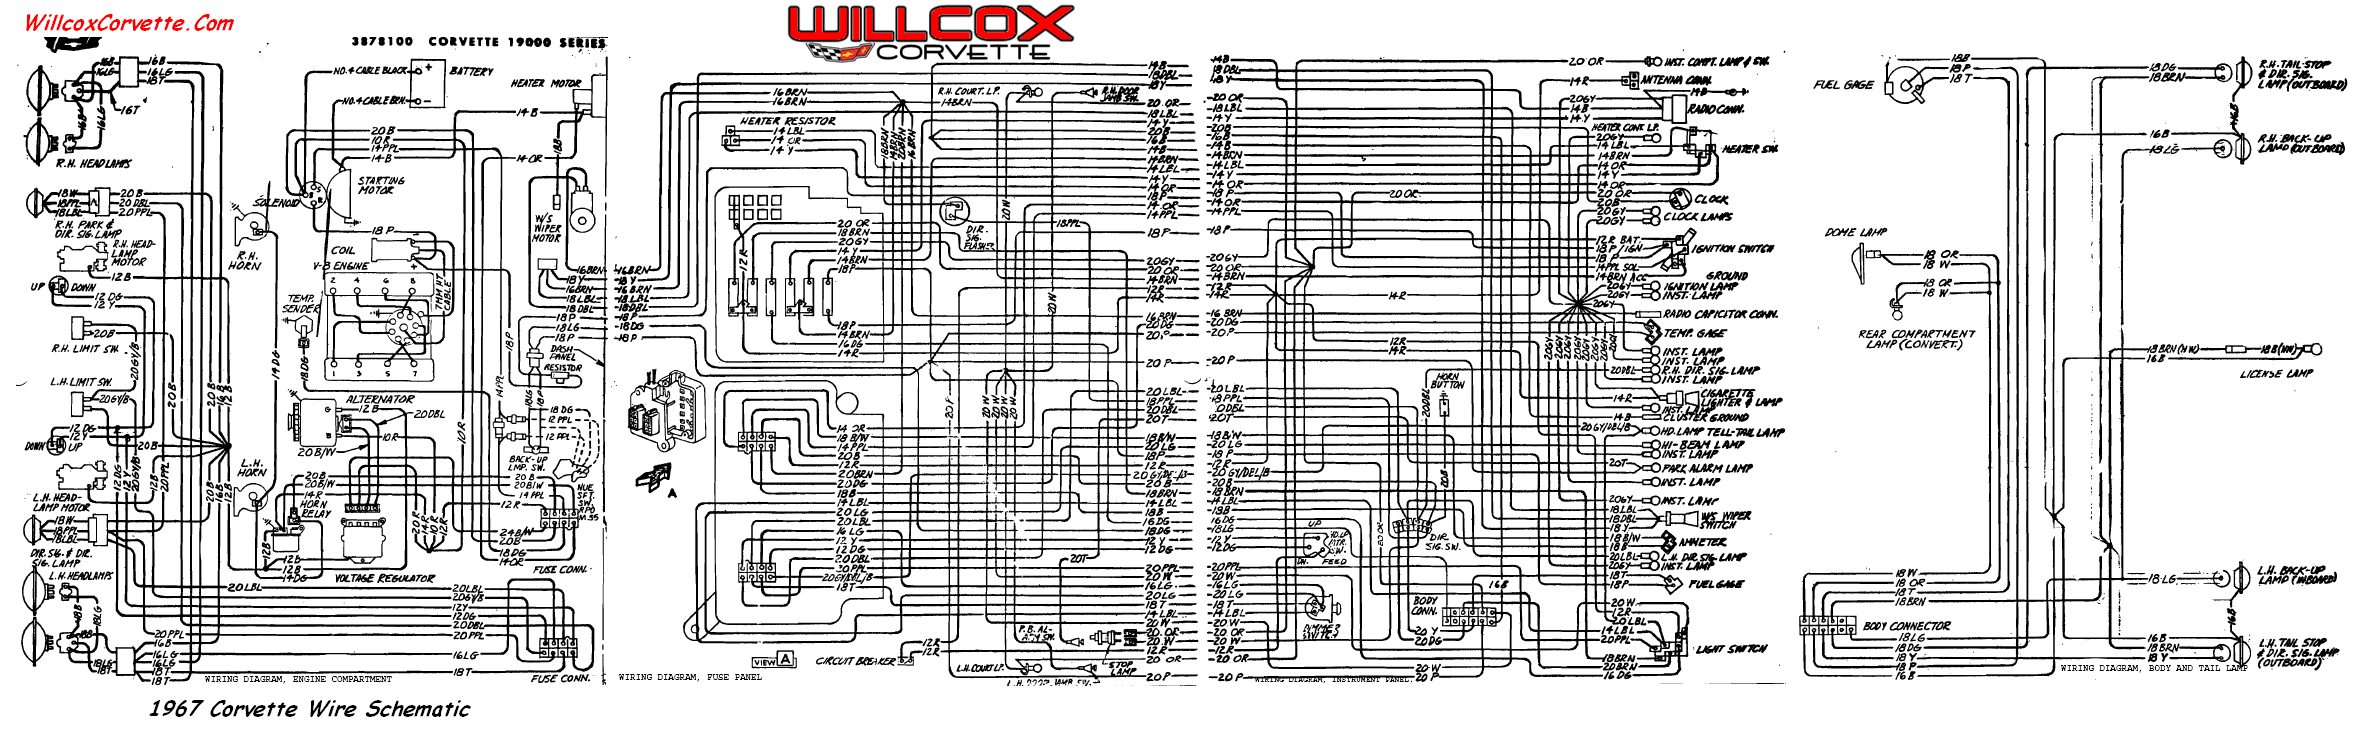 1967 corvette wiring diagram (tracer schematic) willcox corvette, inc c3 corvette wiring diagram 67 wire schematic for tracing wires